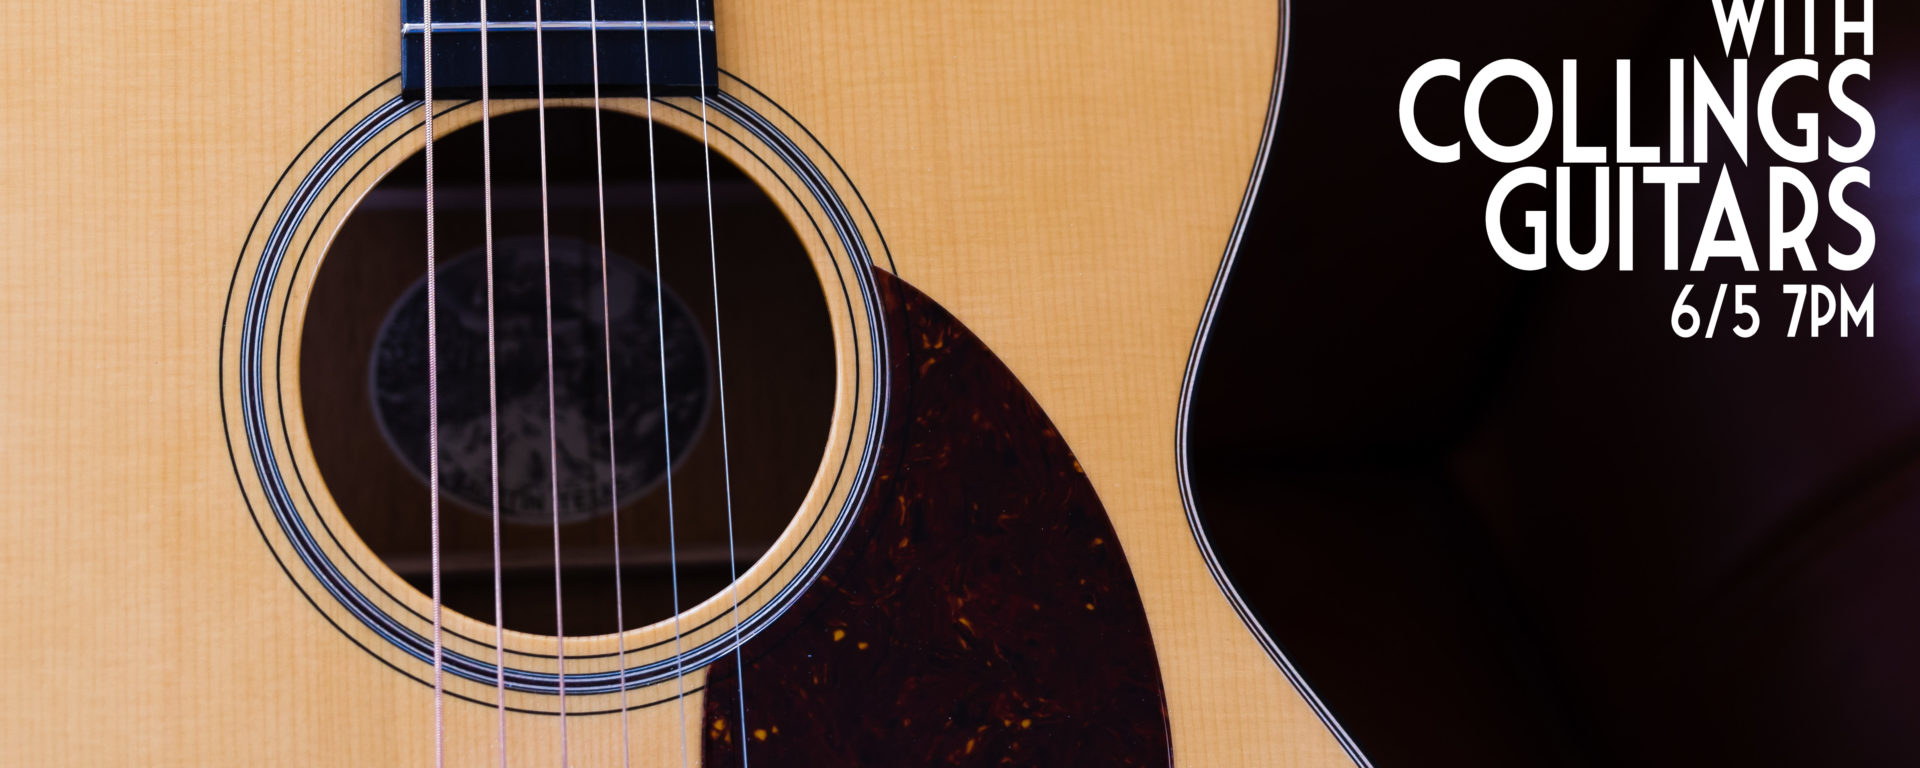 An Evening with Collings Guitars at Mass Street Music